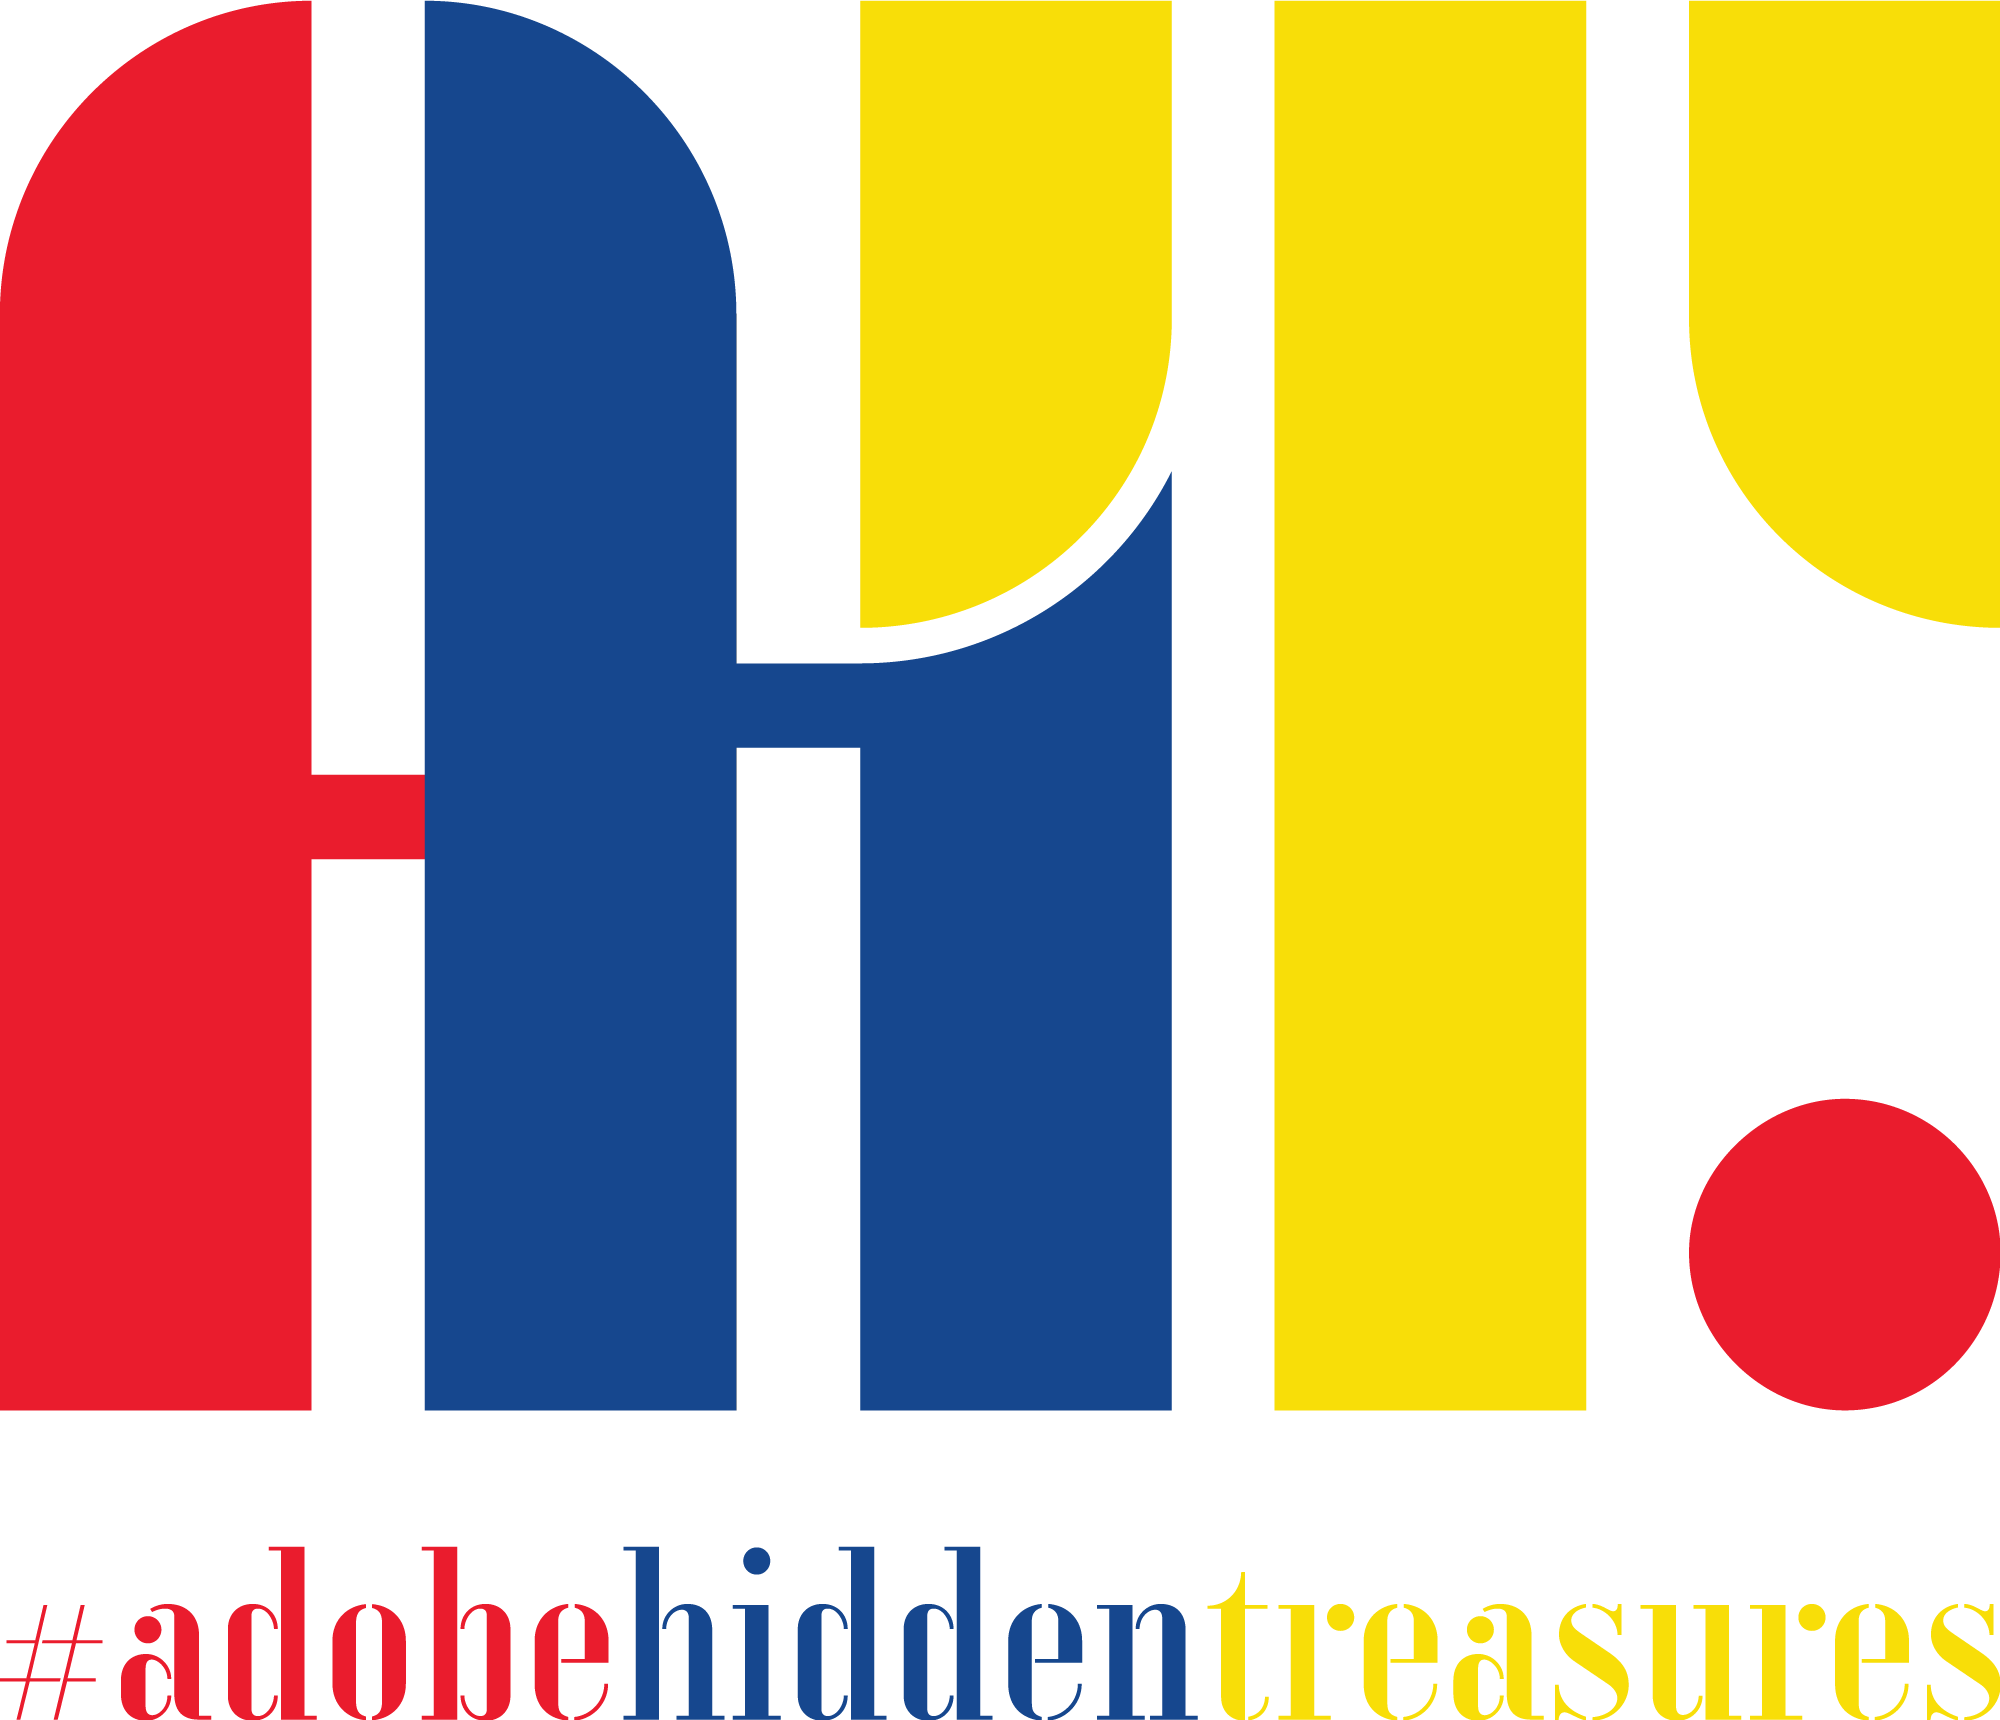 Adobe Hidden Treasures Full Color Logo